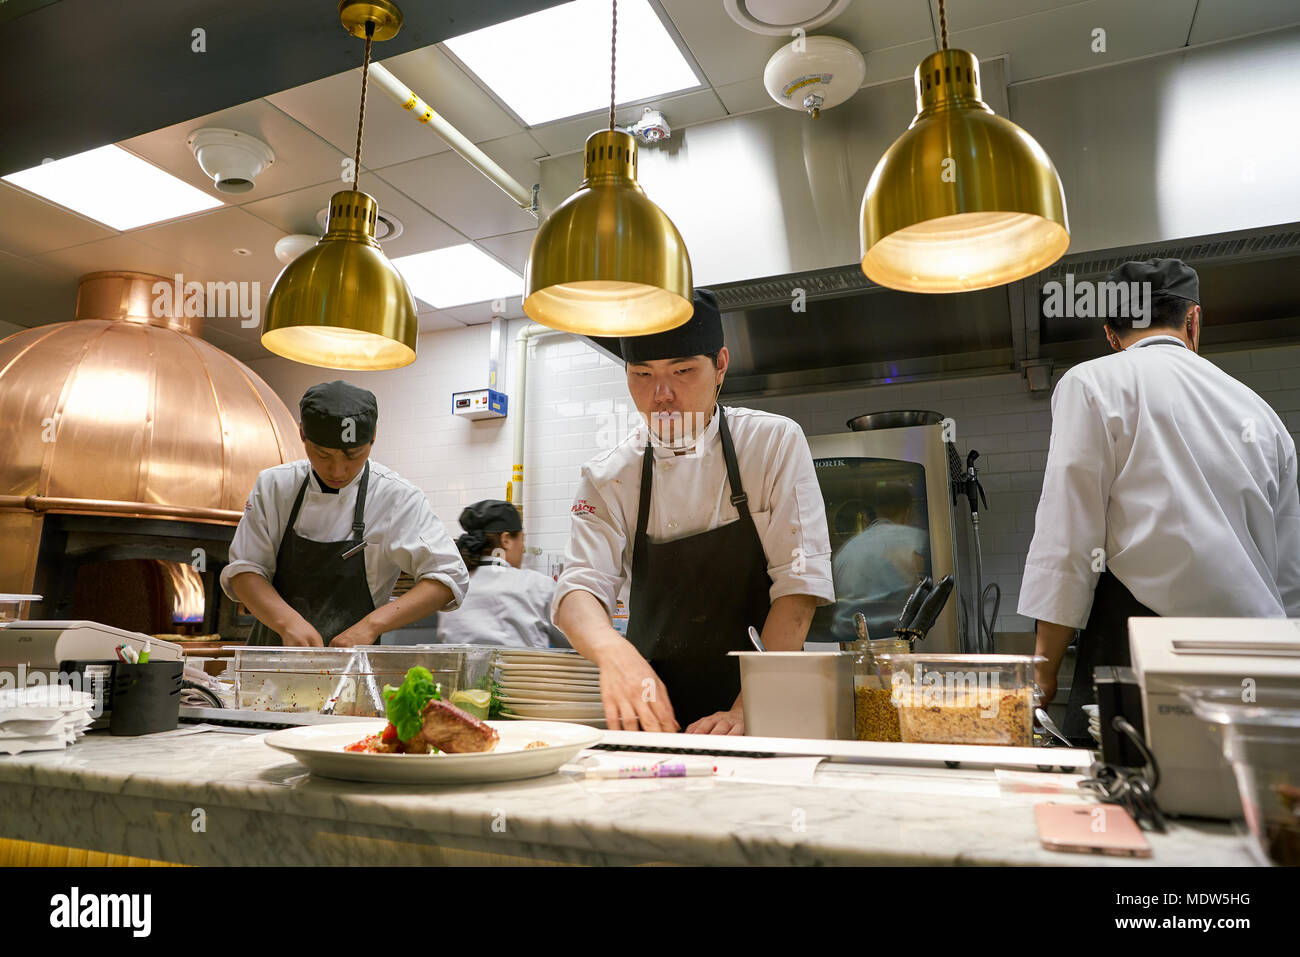 Busan South Korea May 28 2017 Staff In Modern Open Kitchen Of